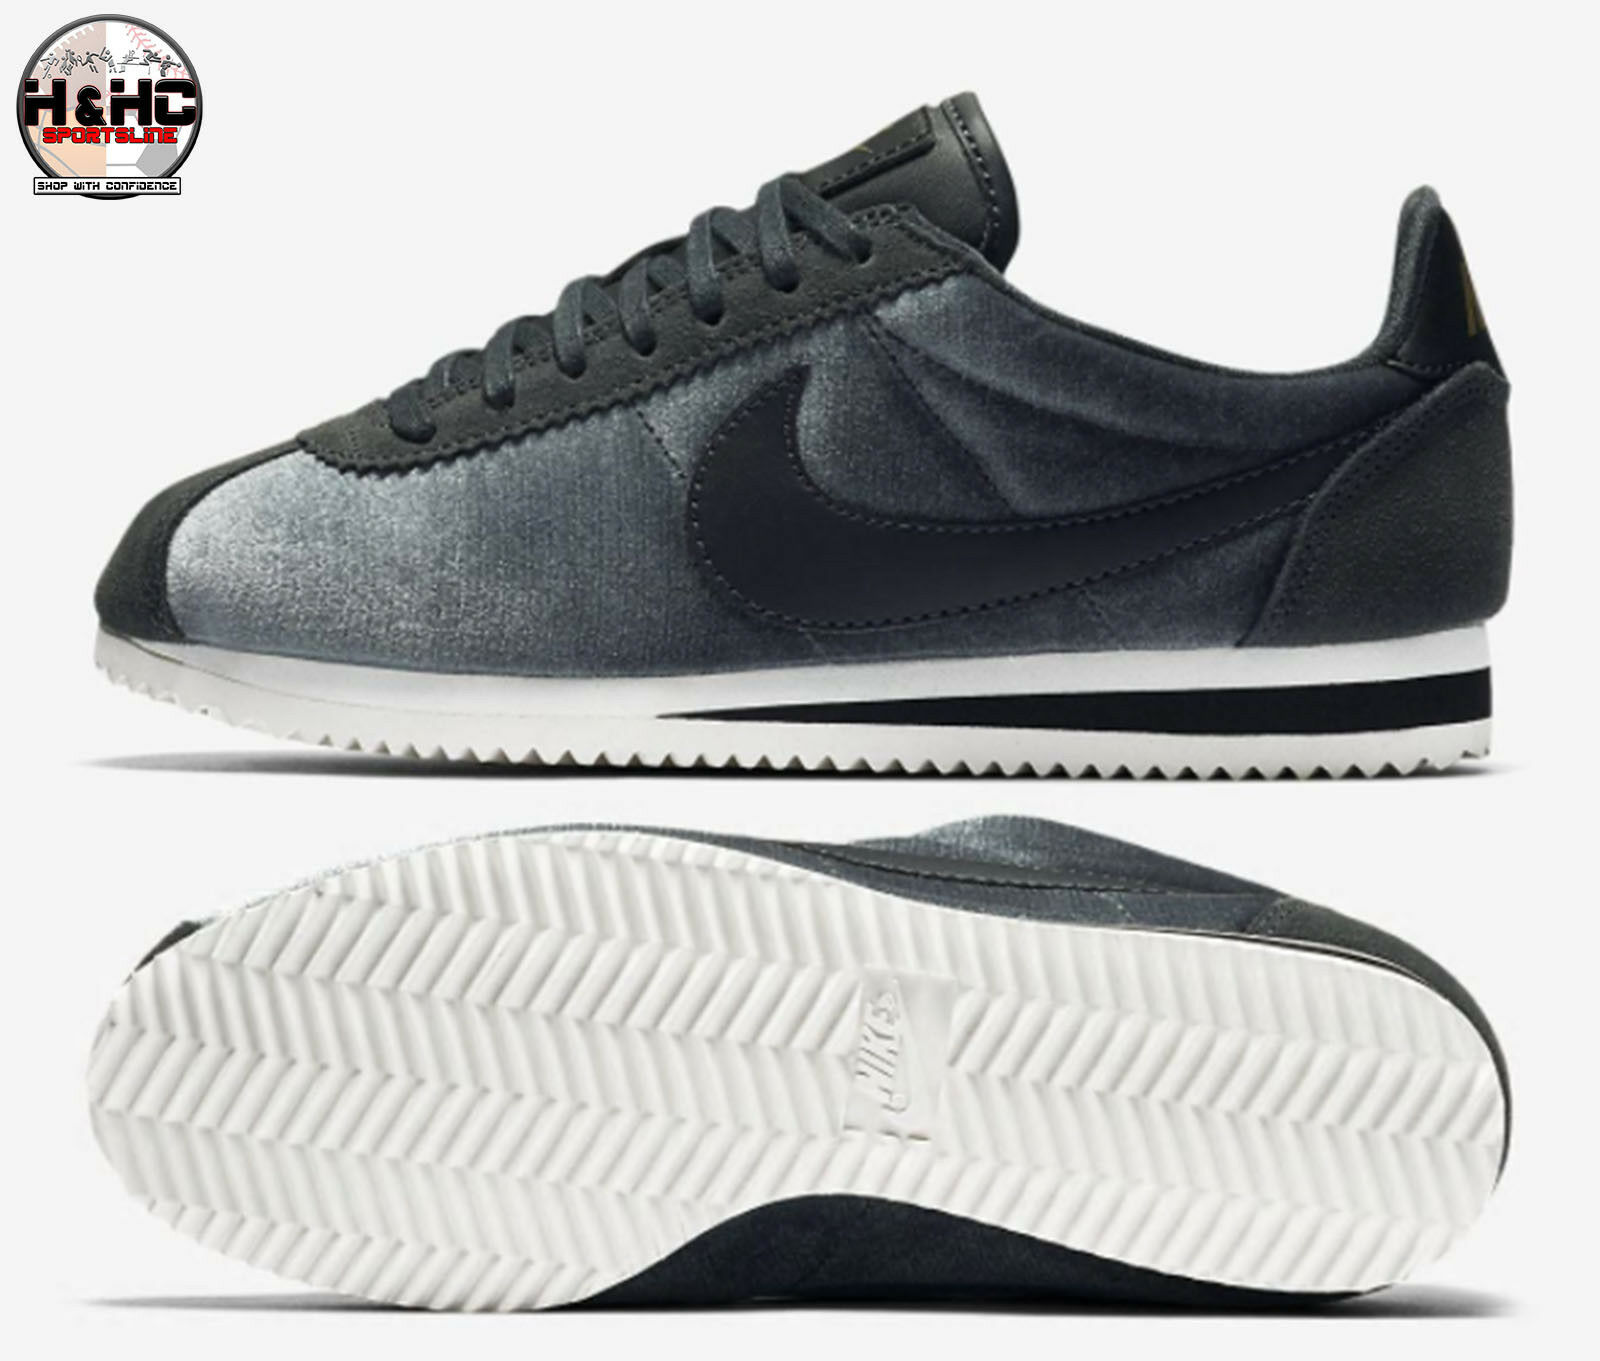 Nike Classic Cortez SE 902856 012 Anthracite Black Women's shoes Sz 6